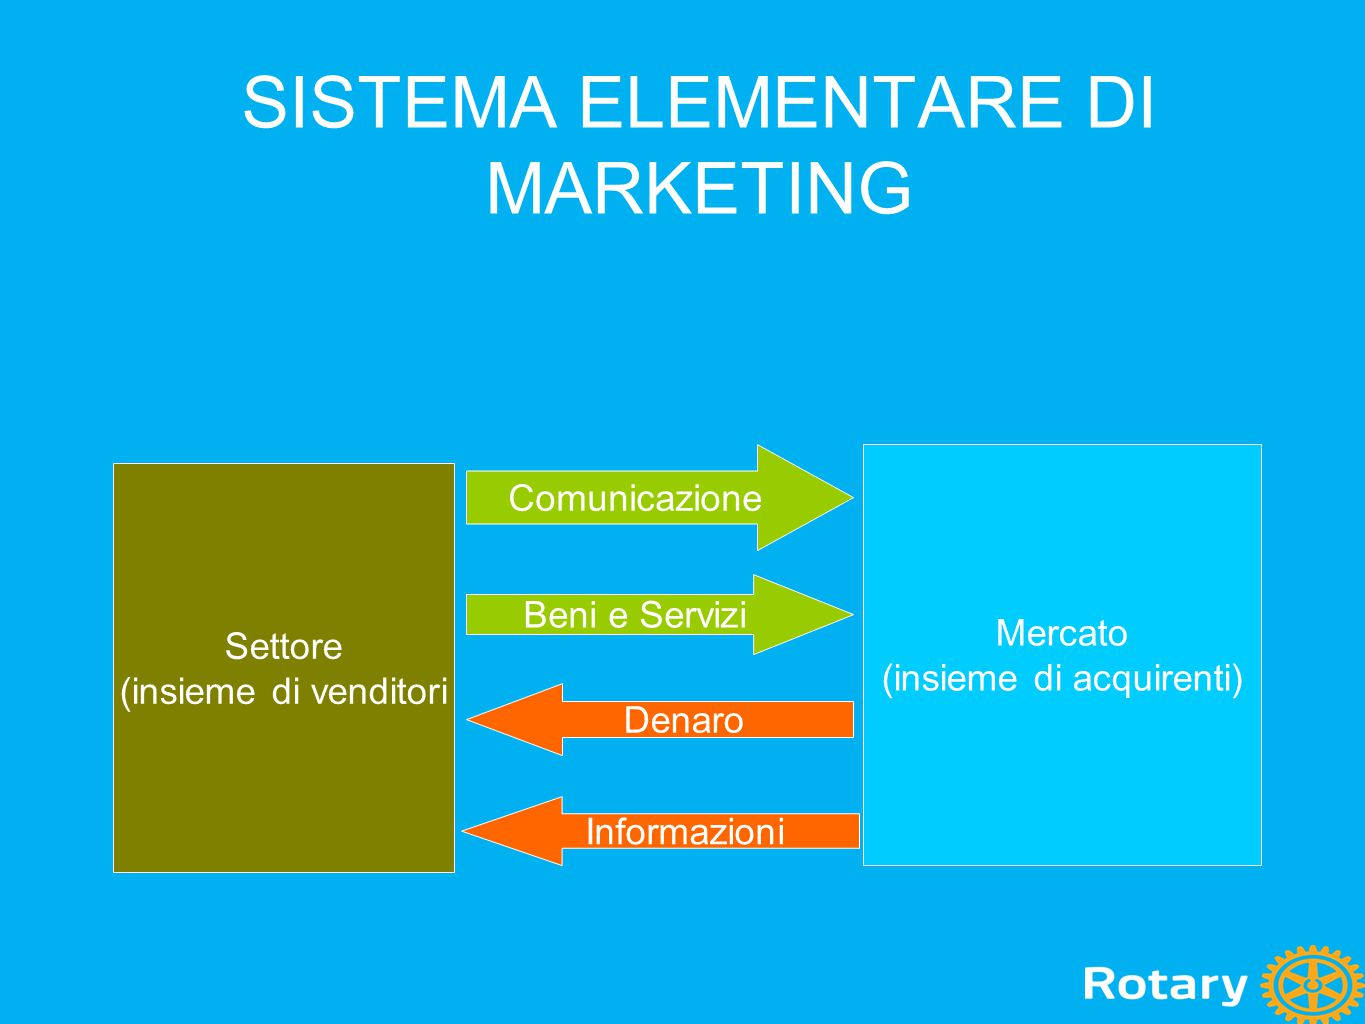 SISTEMA ELEMENTARE DI MARKETING